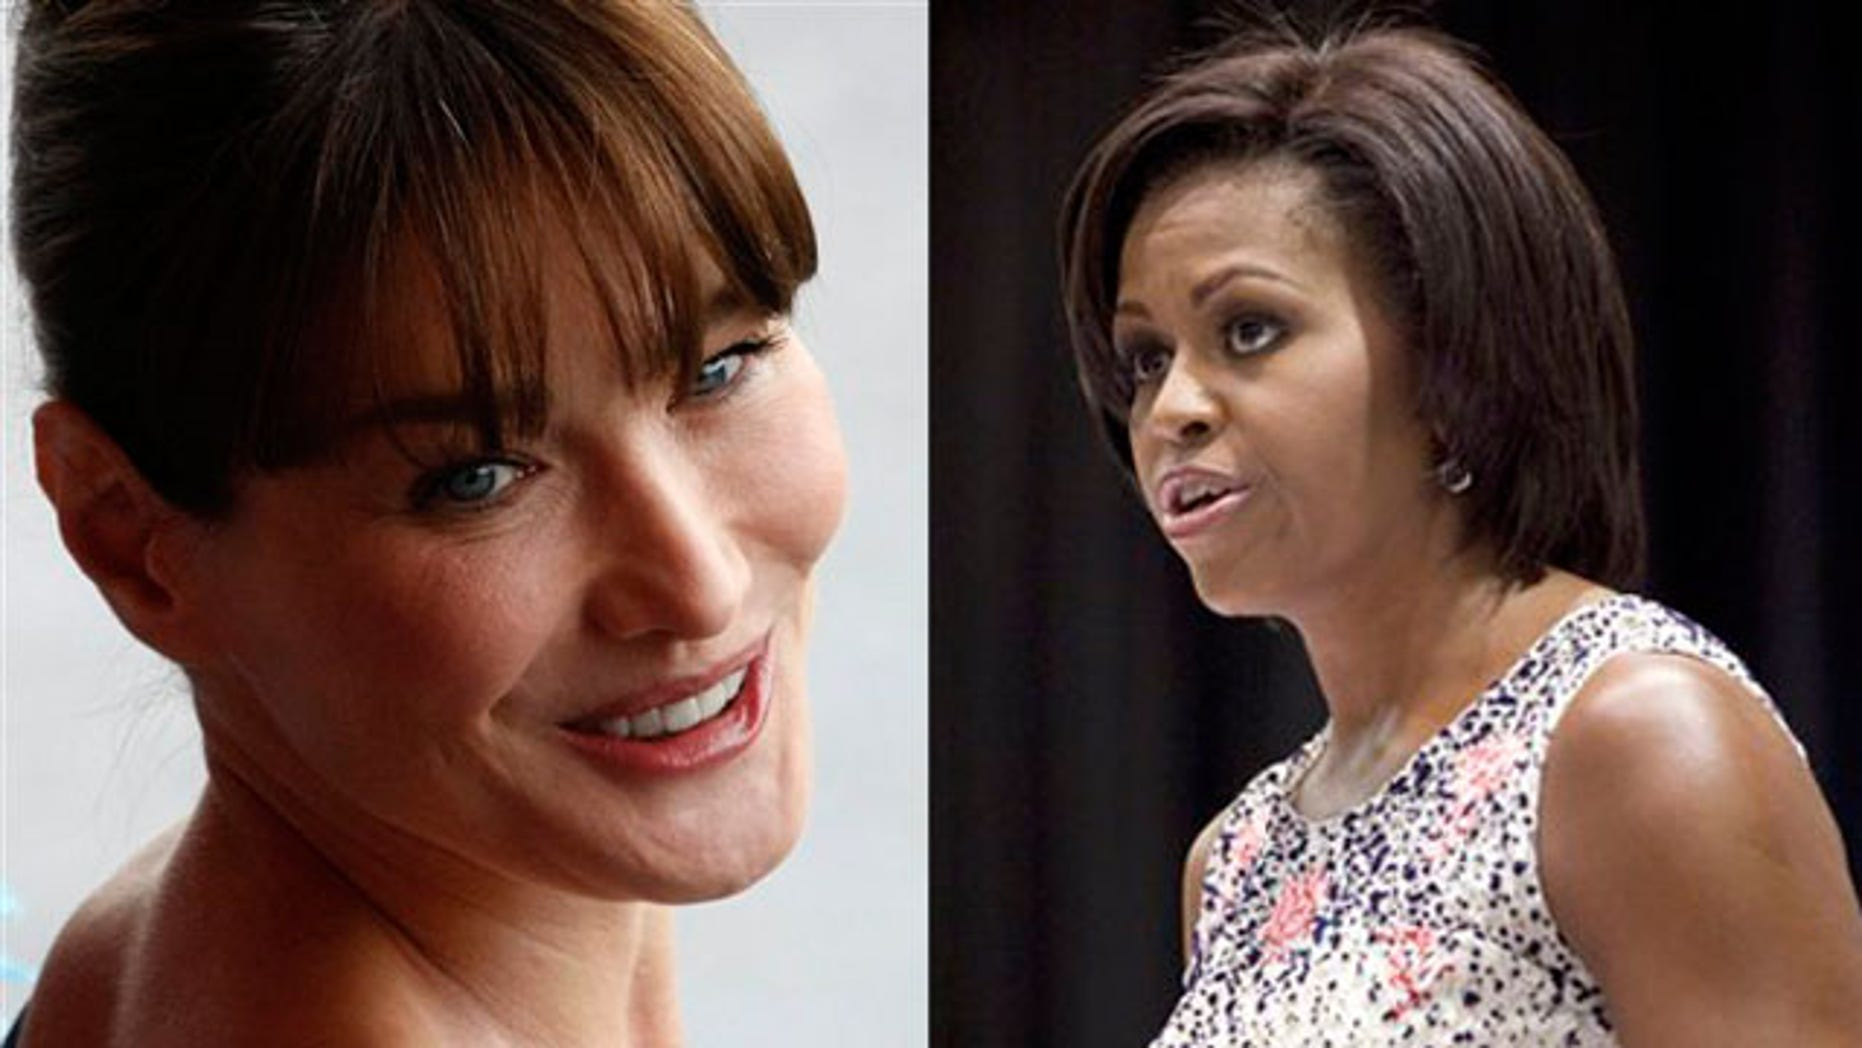 Shown here are French first lady Carla Bruni, left, and U.S. first lady Michelle Obama. (AP Photos)